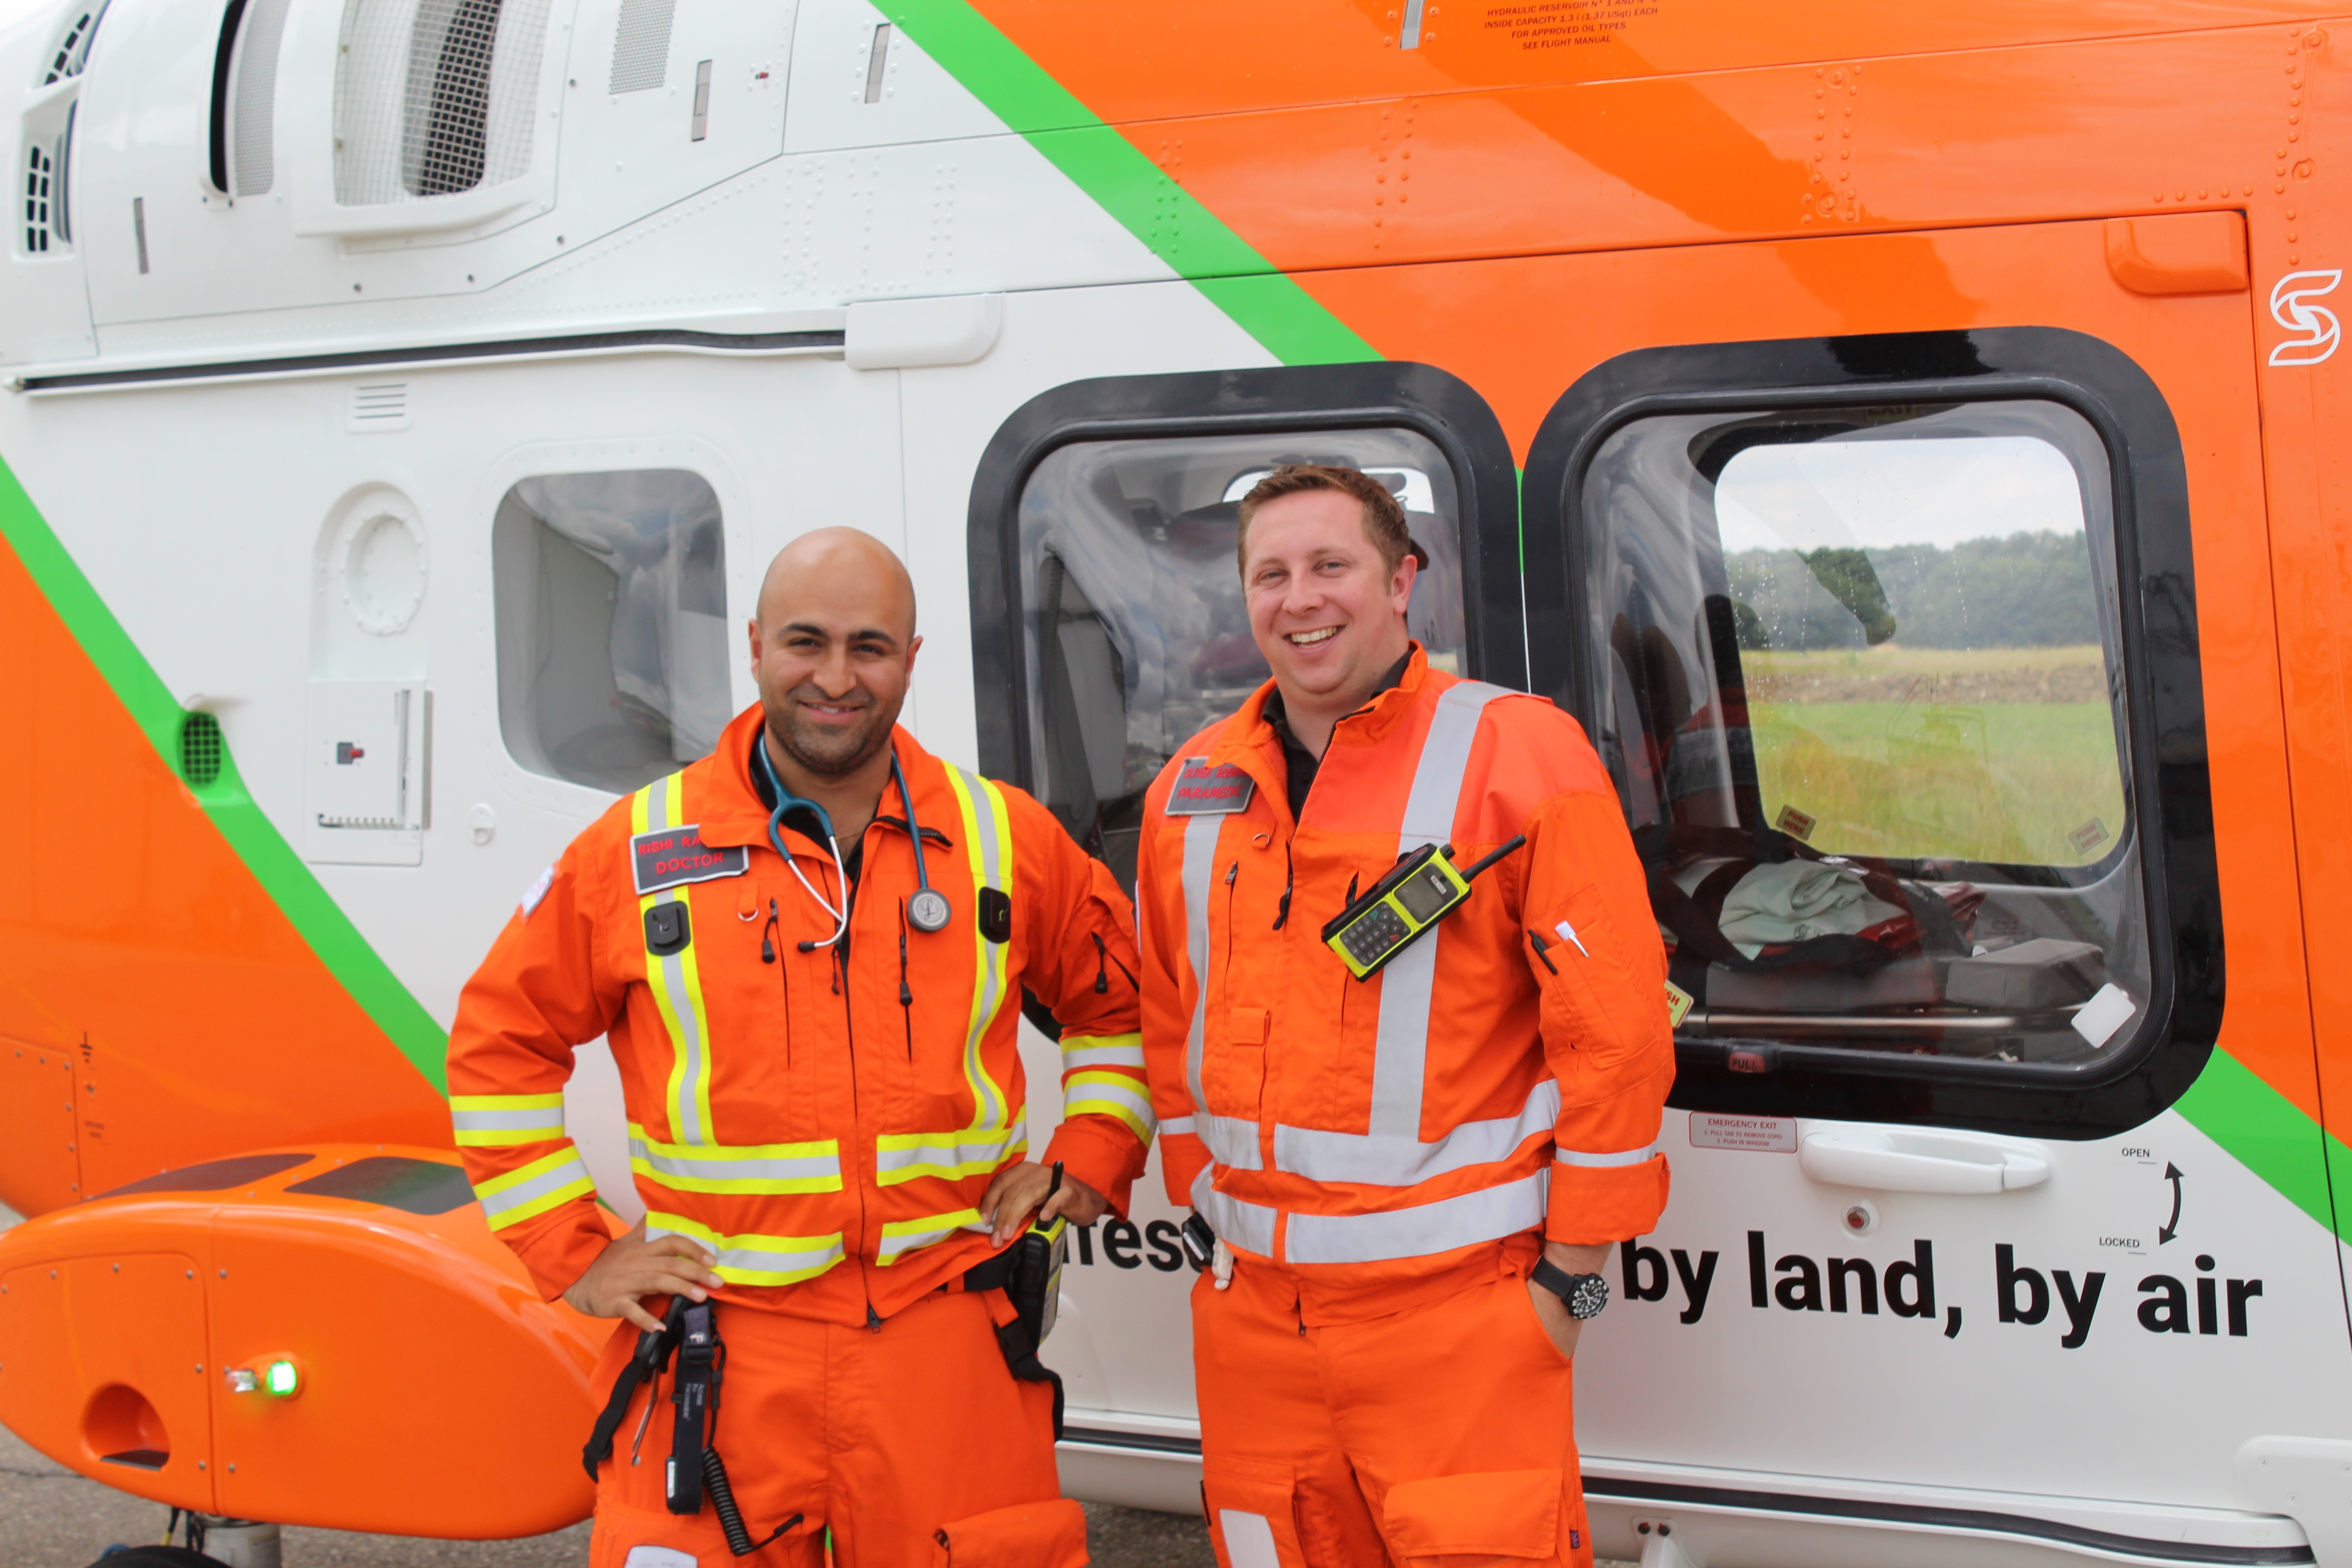 Doctor Rishi and Paramedic Ollie